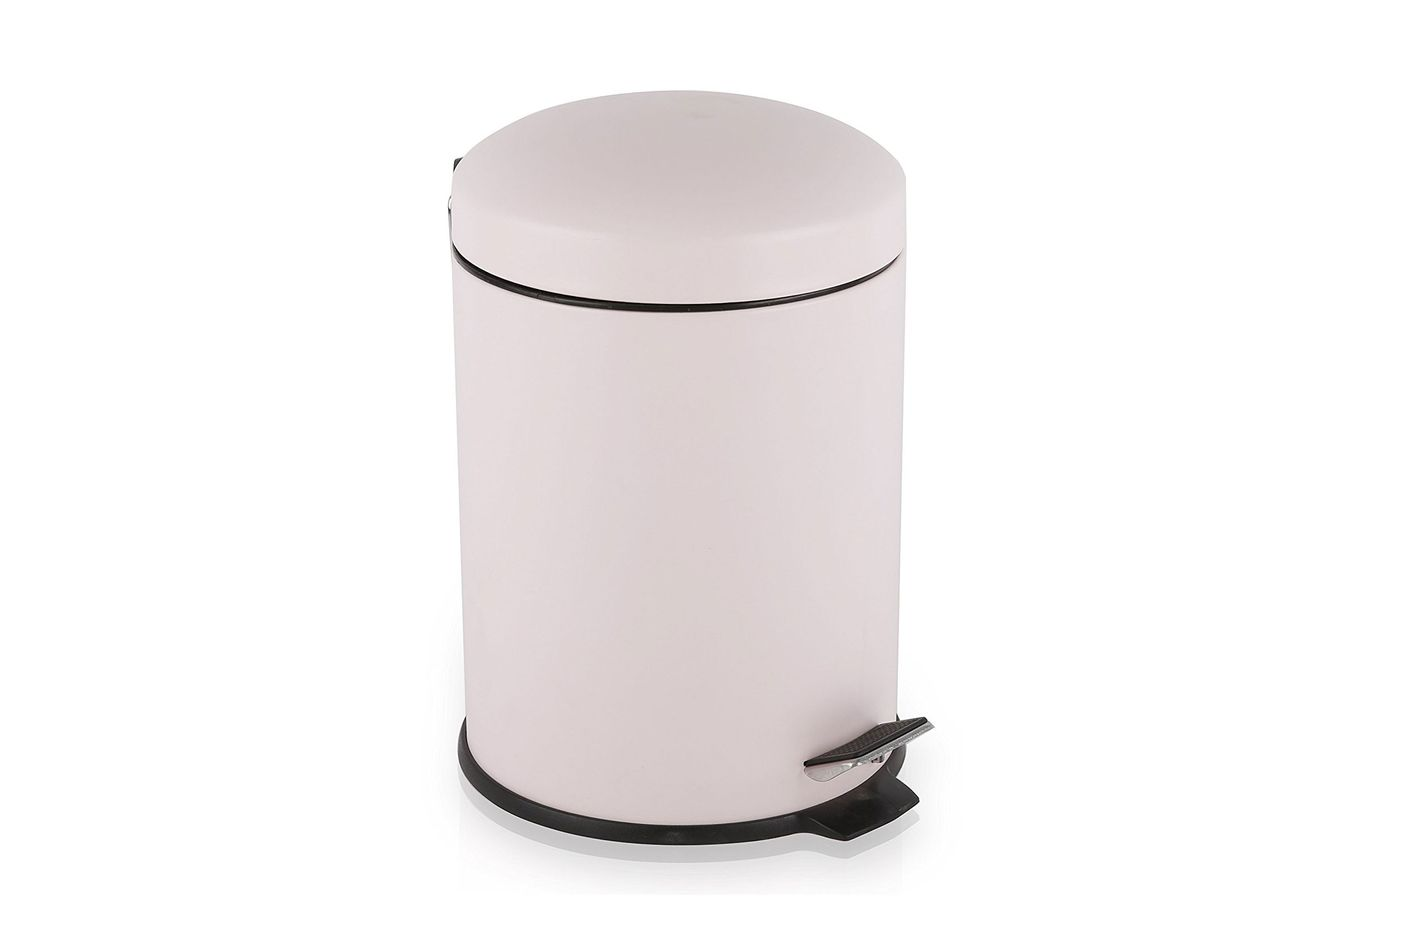 BINO Stainless Steel 1.3 Gallon / 5 Liter Round Step Trash Can